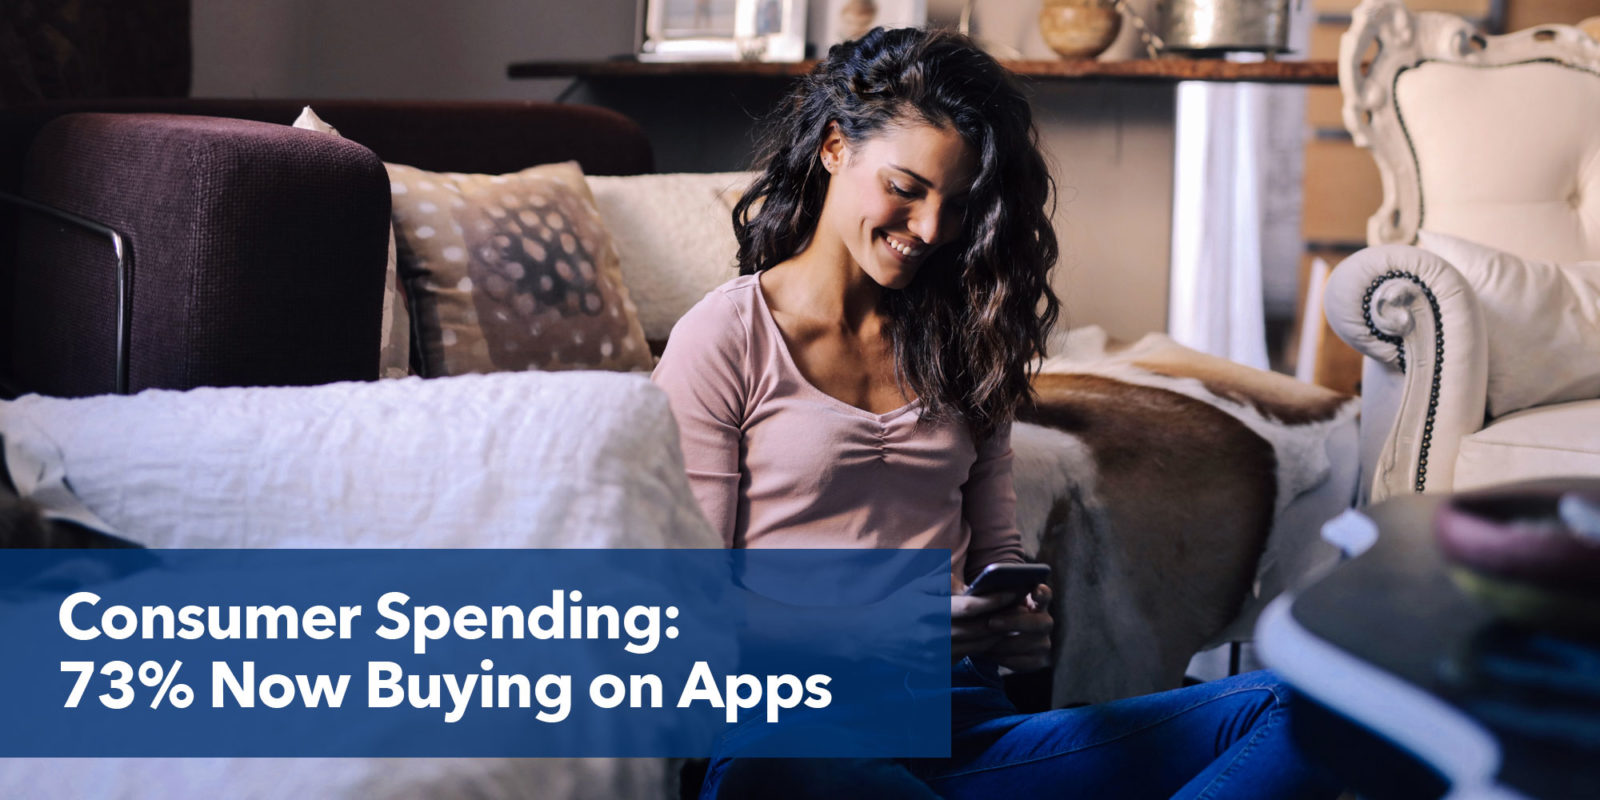 Consumer spending: 73% now buying on apps.